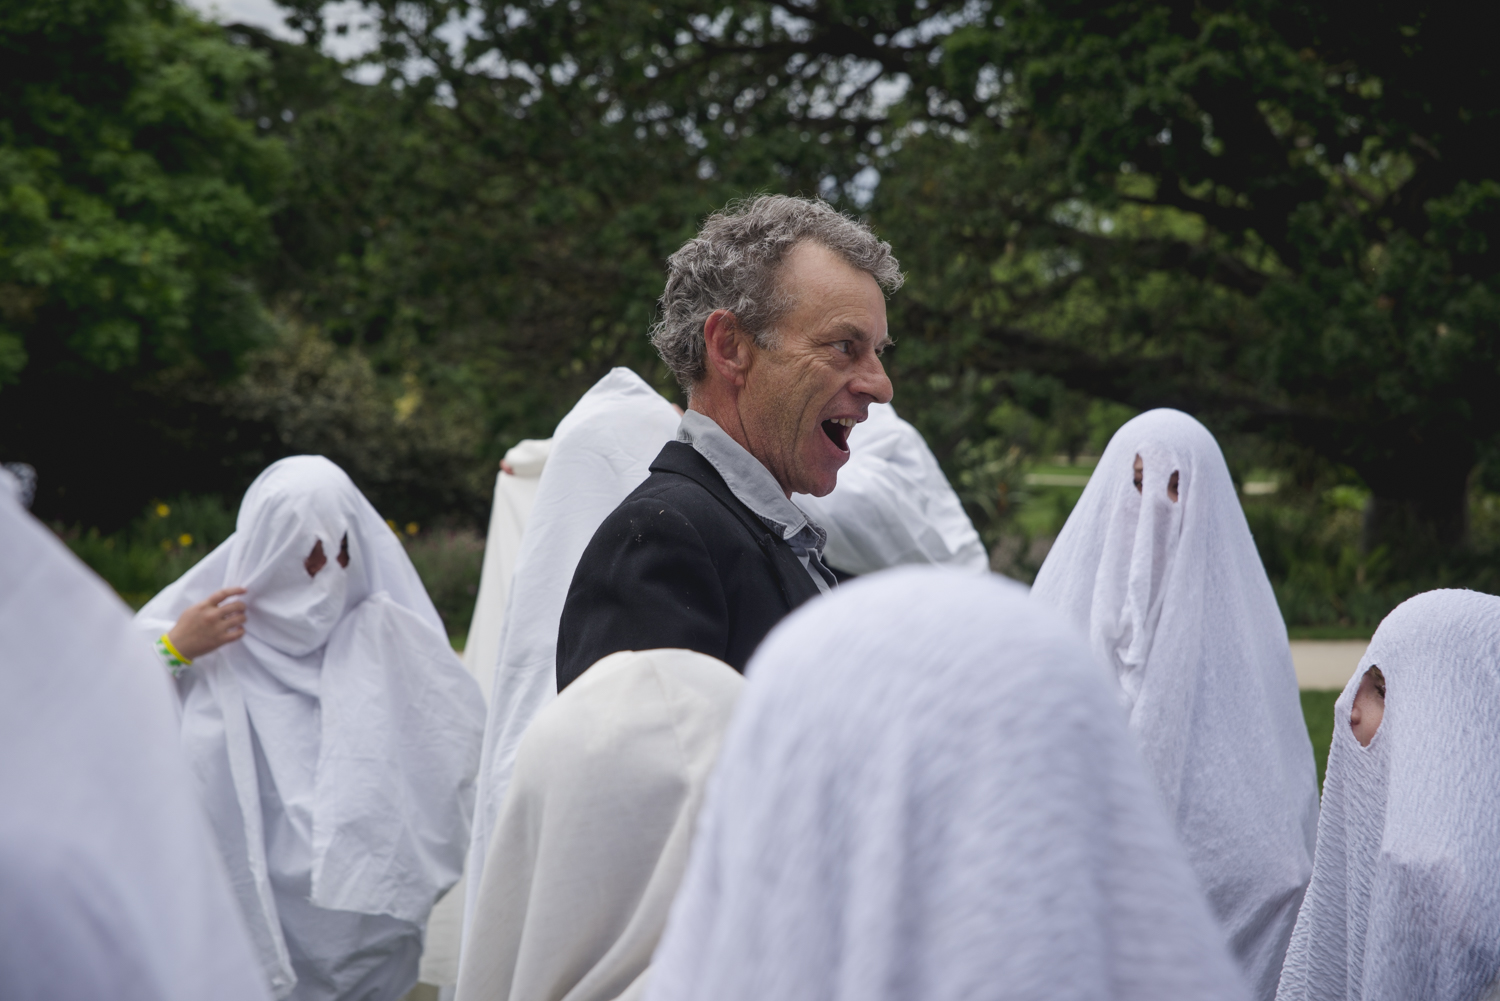 4 BGP, Dan Goronszy, David, and his ghosts.jpg